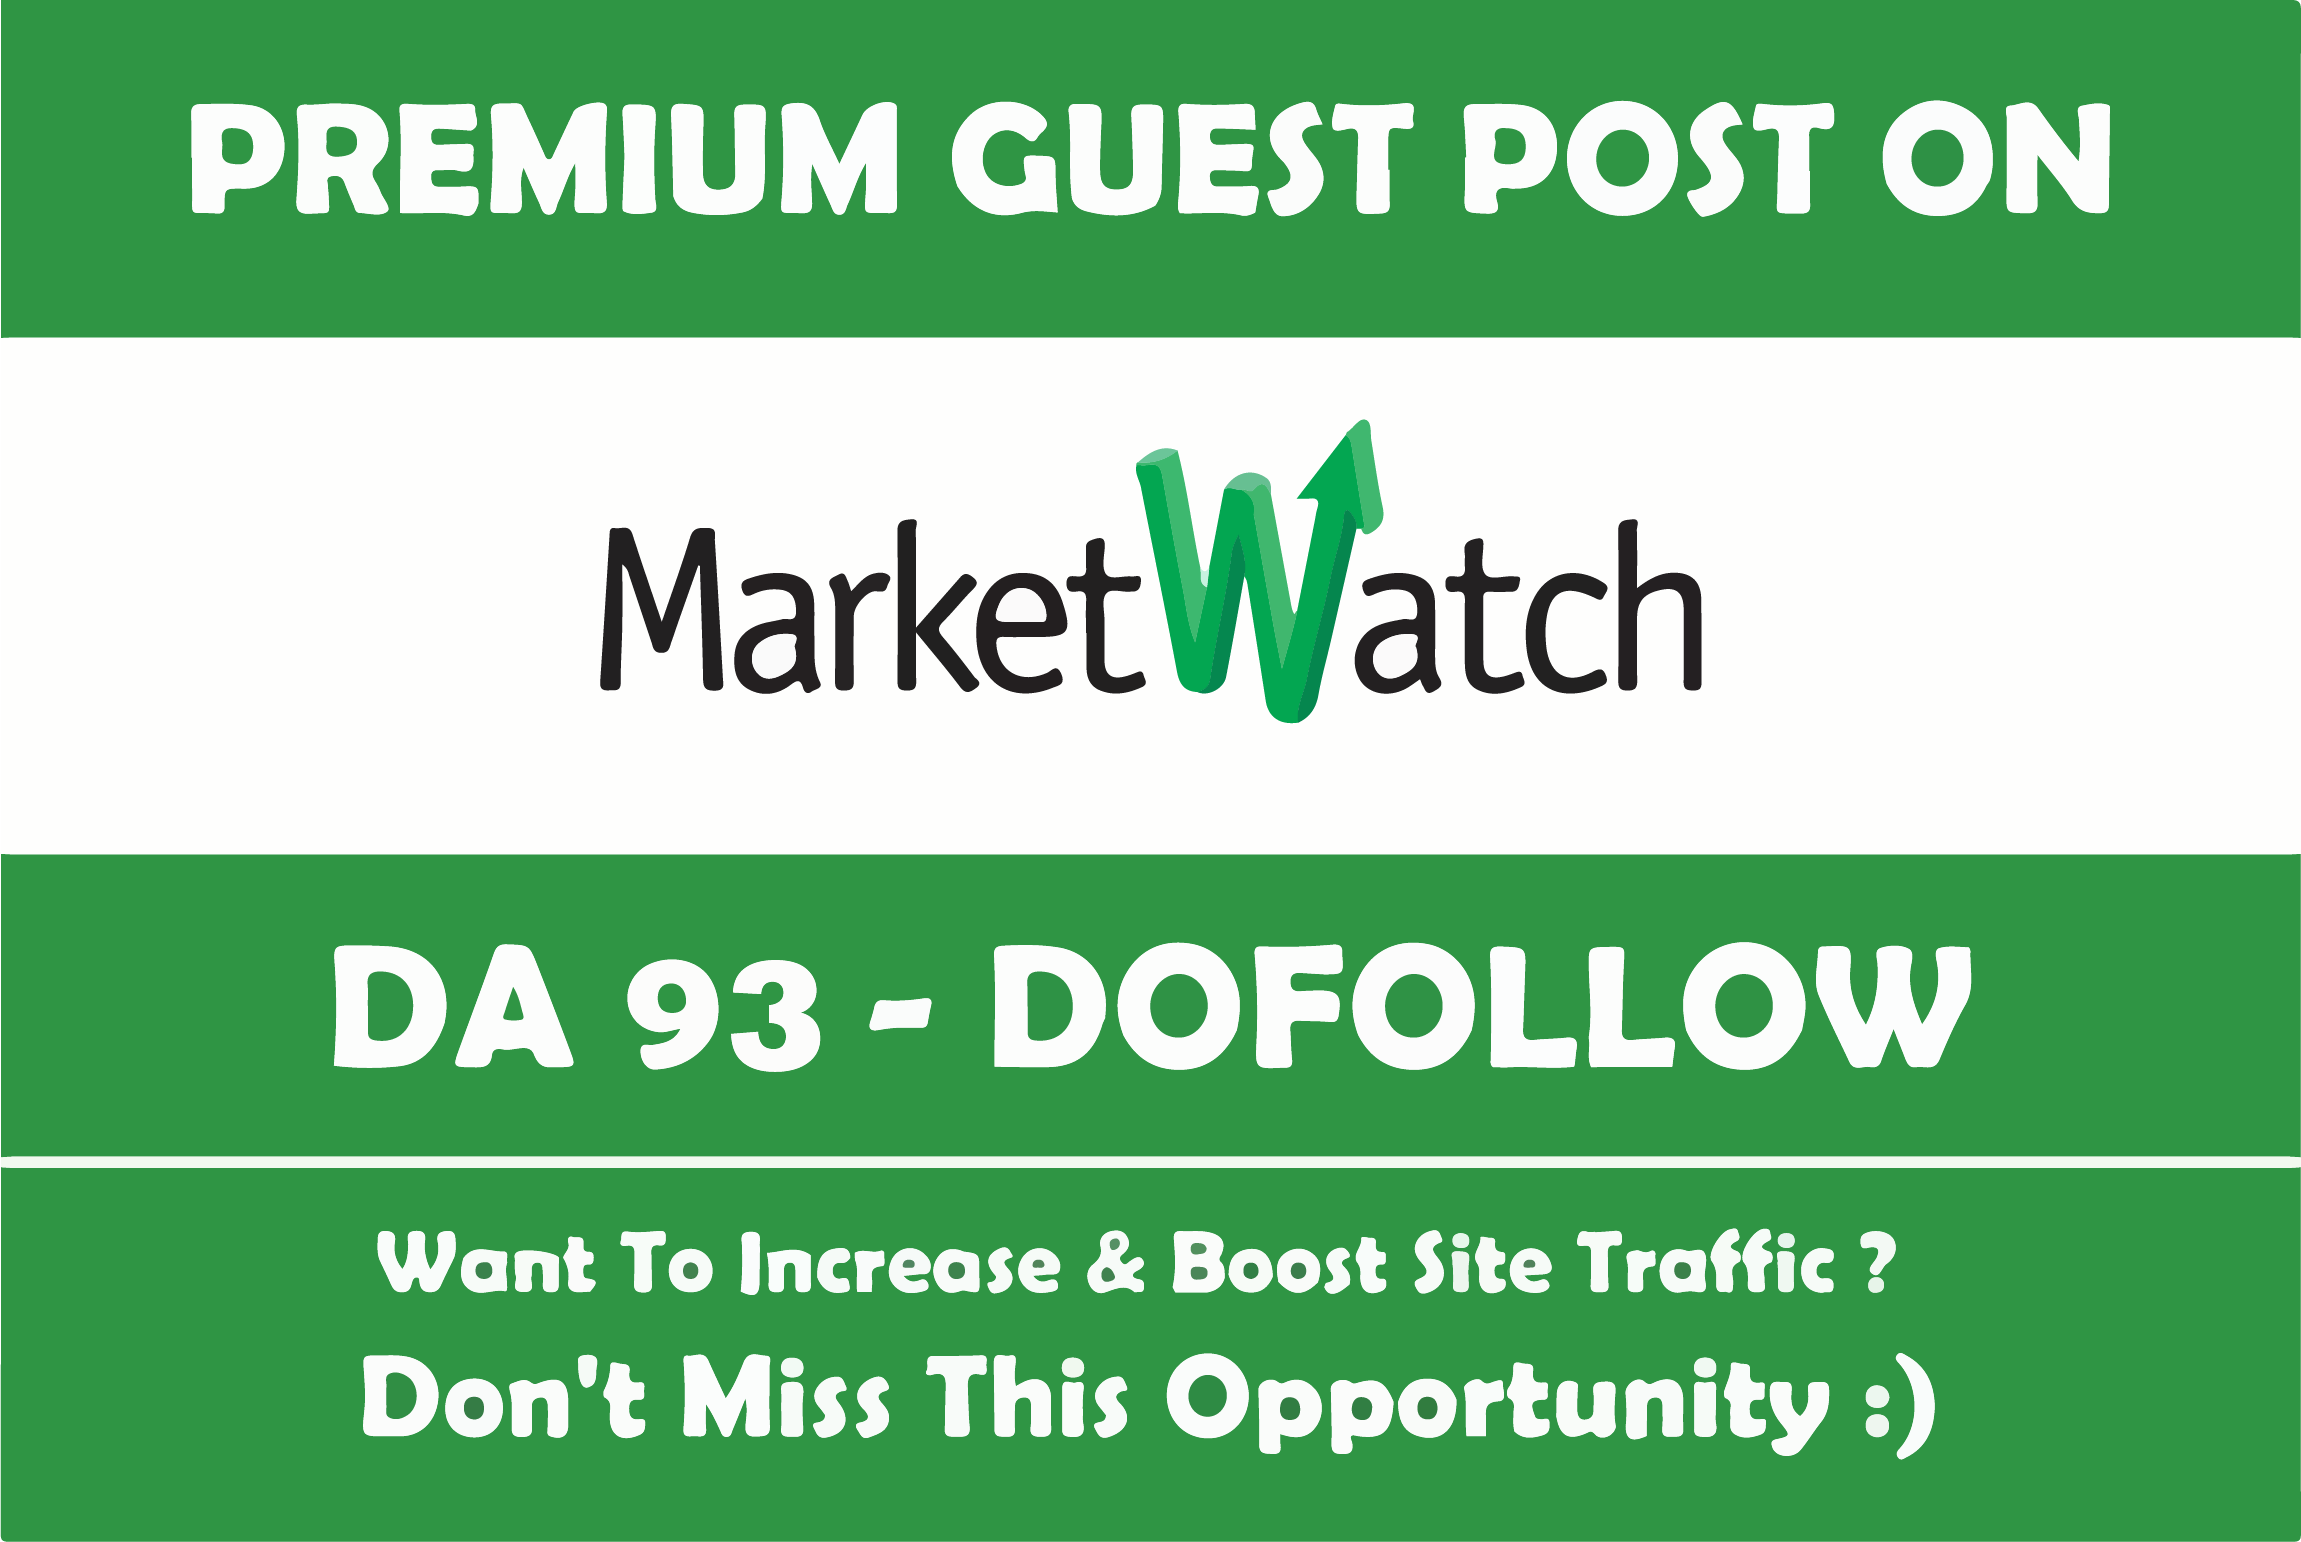 Only For Few Days Limited Time Offer On Marketwatch. com DA93 Blog